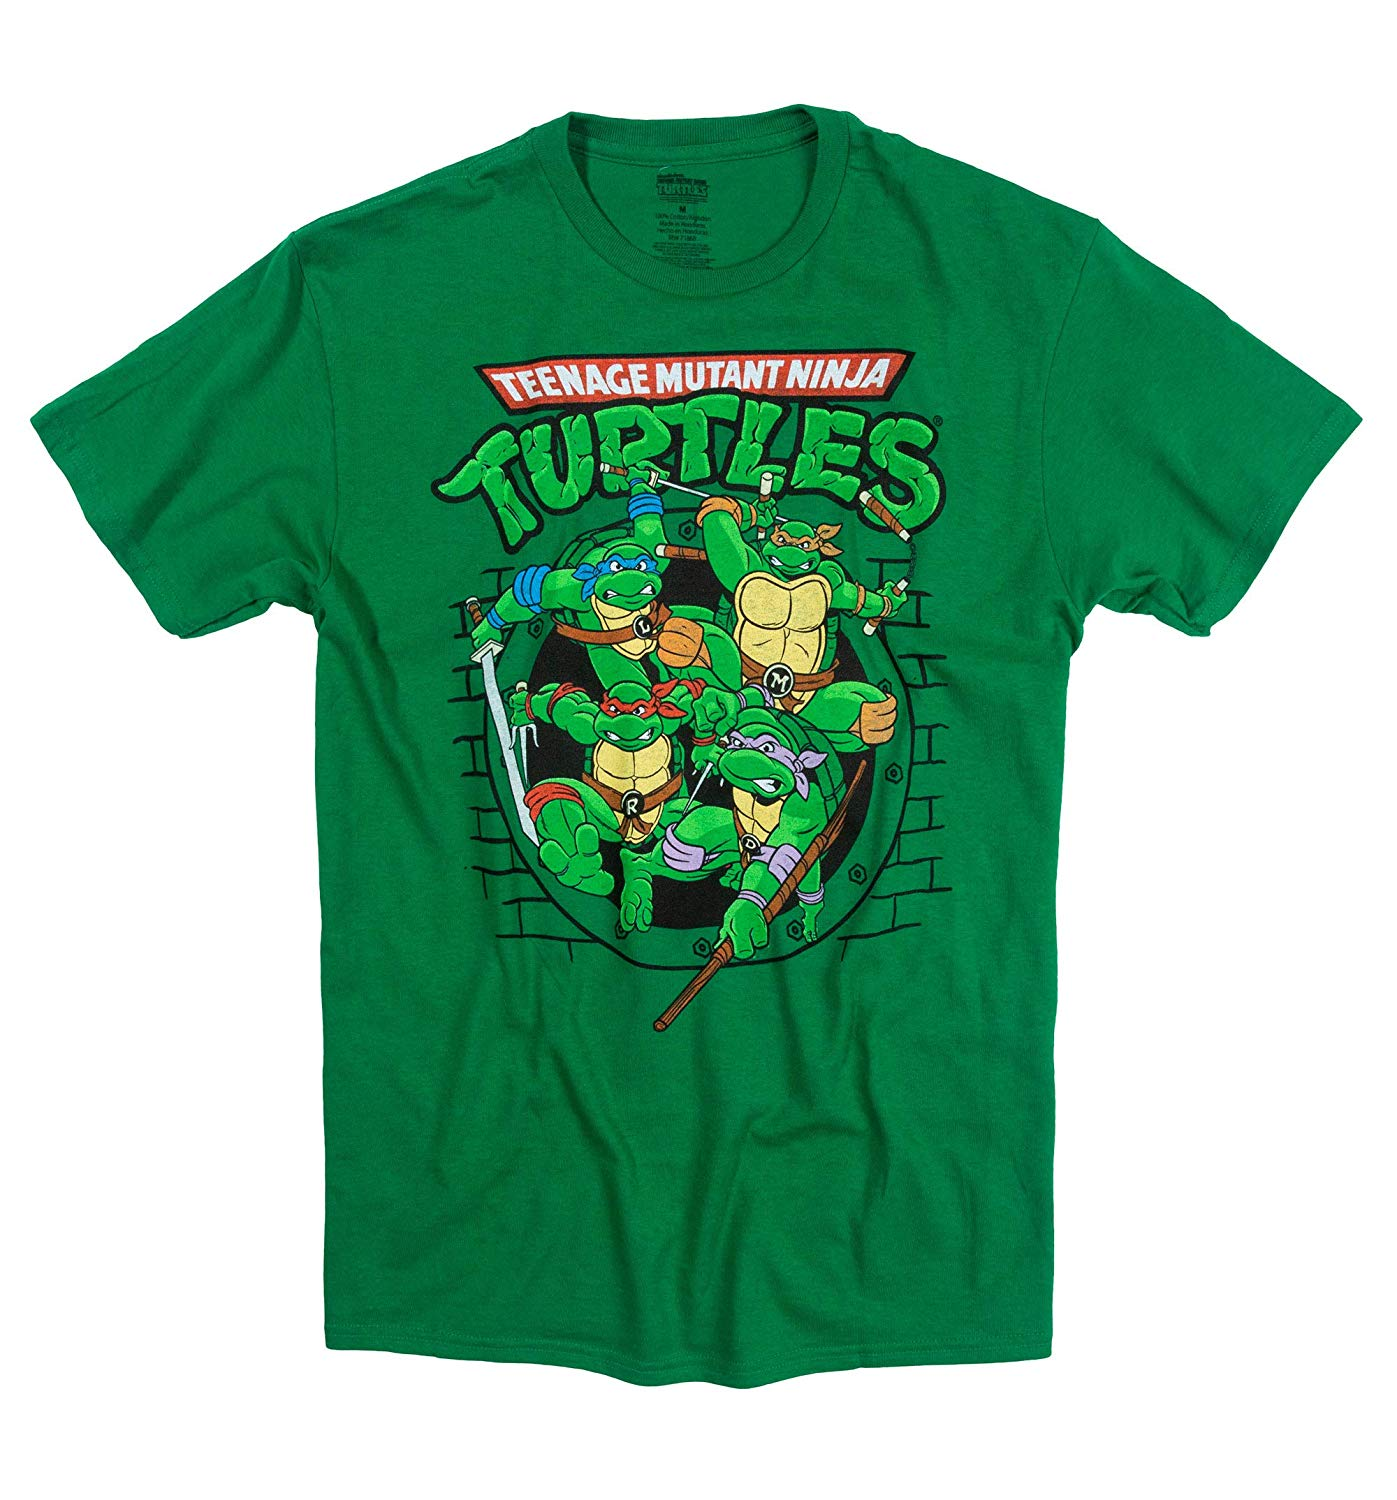 Teenage Mutant Ninja Turtles Ready for Action Green T-Shirt Large